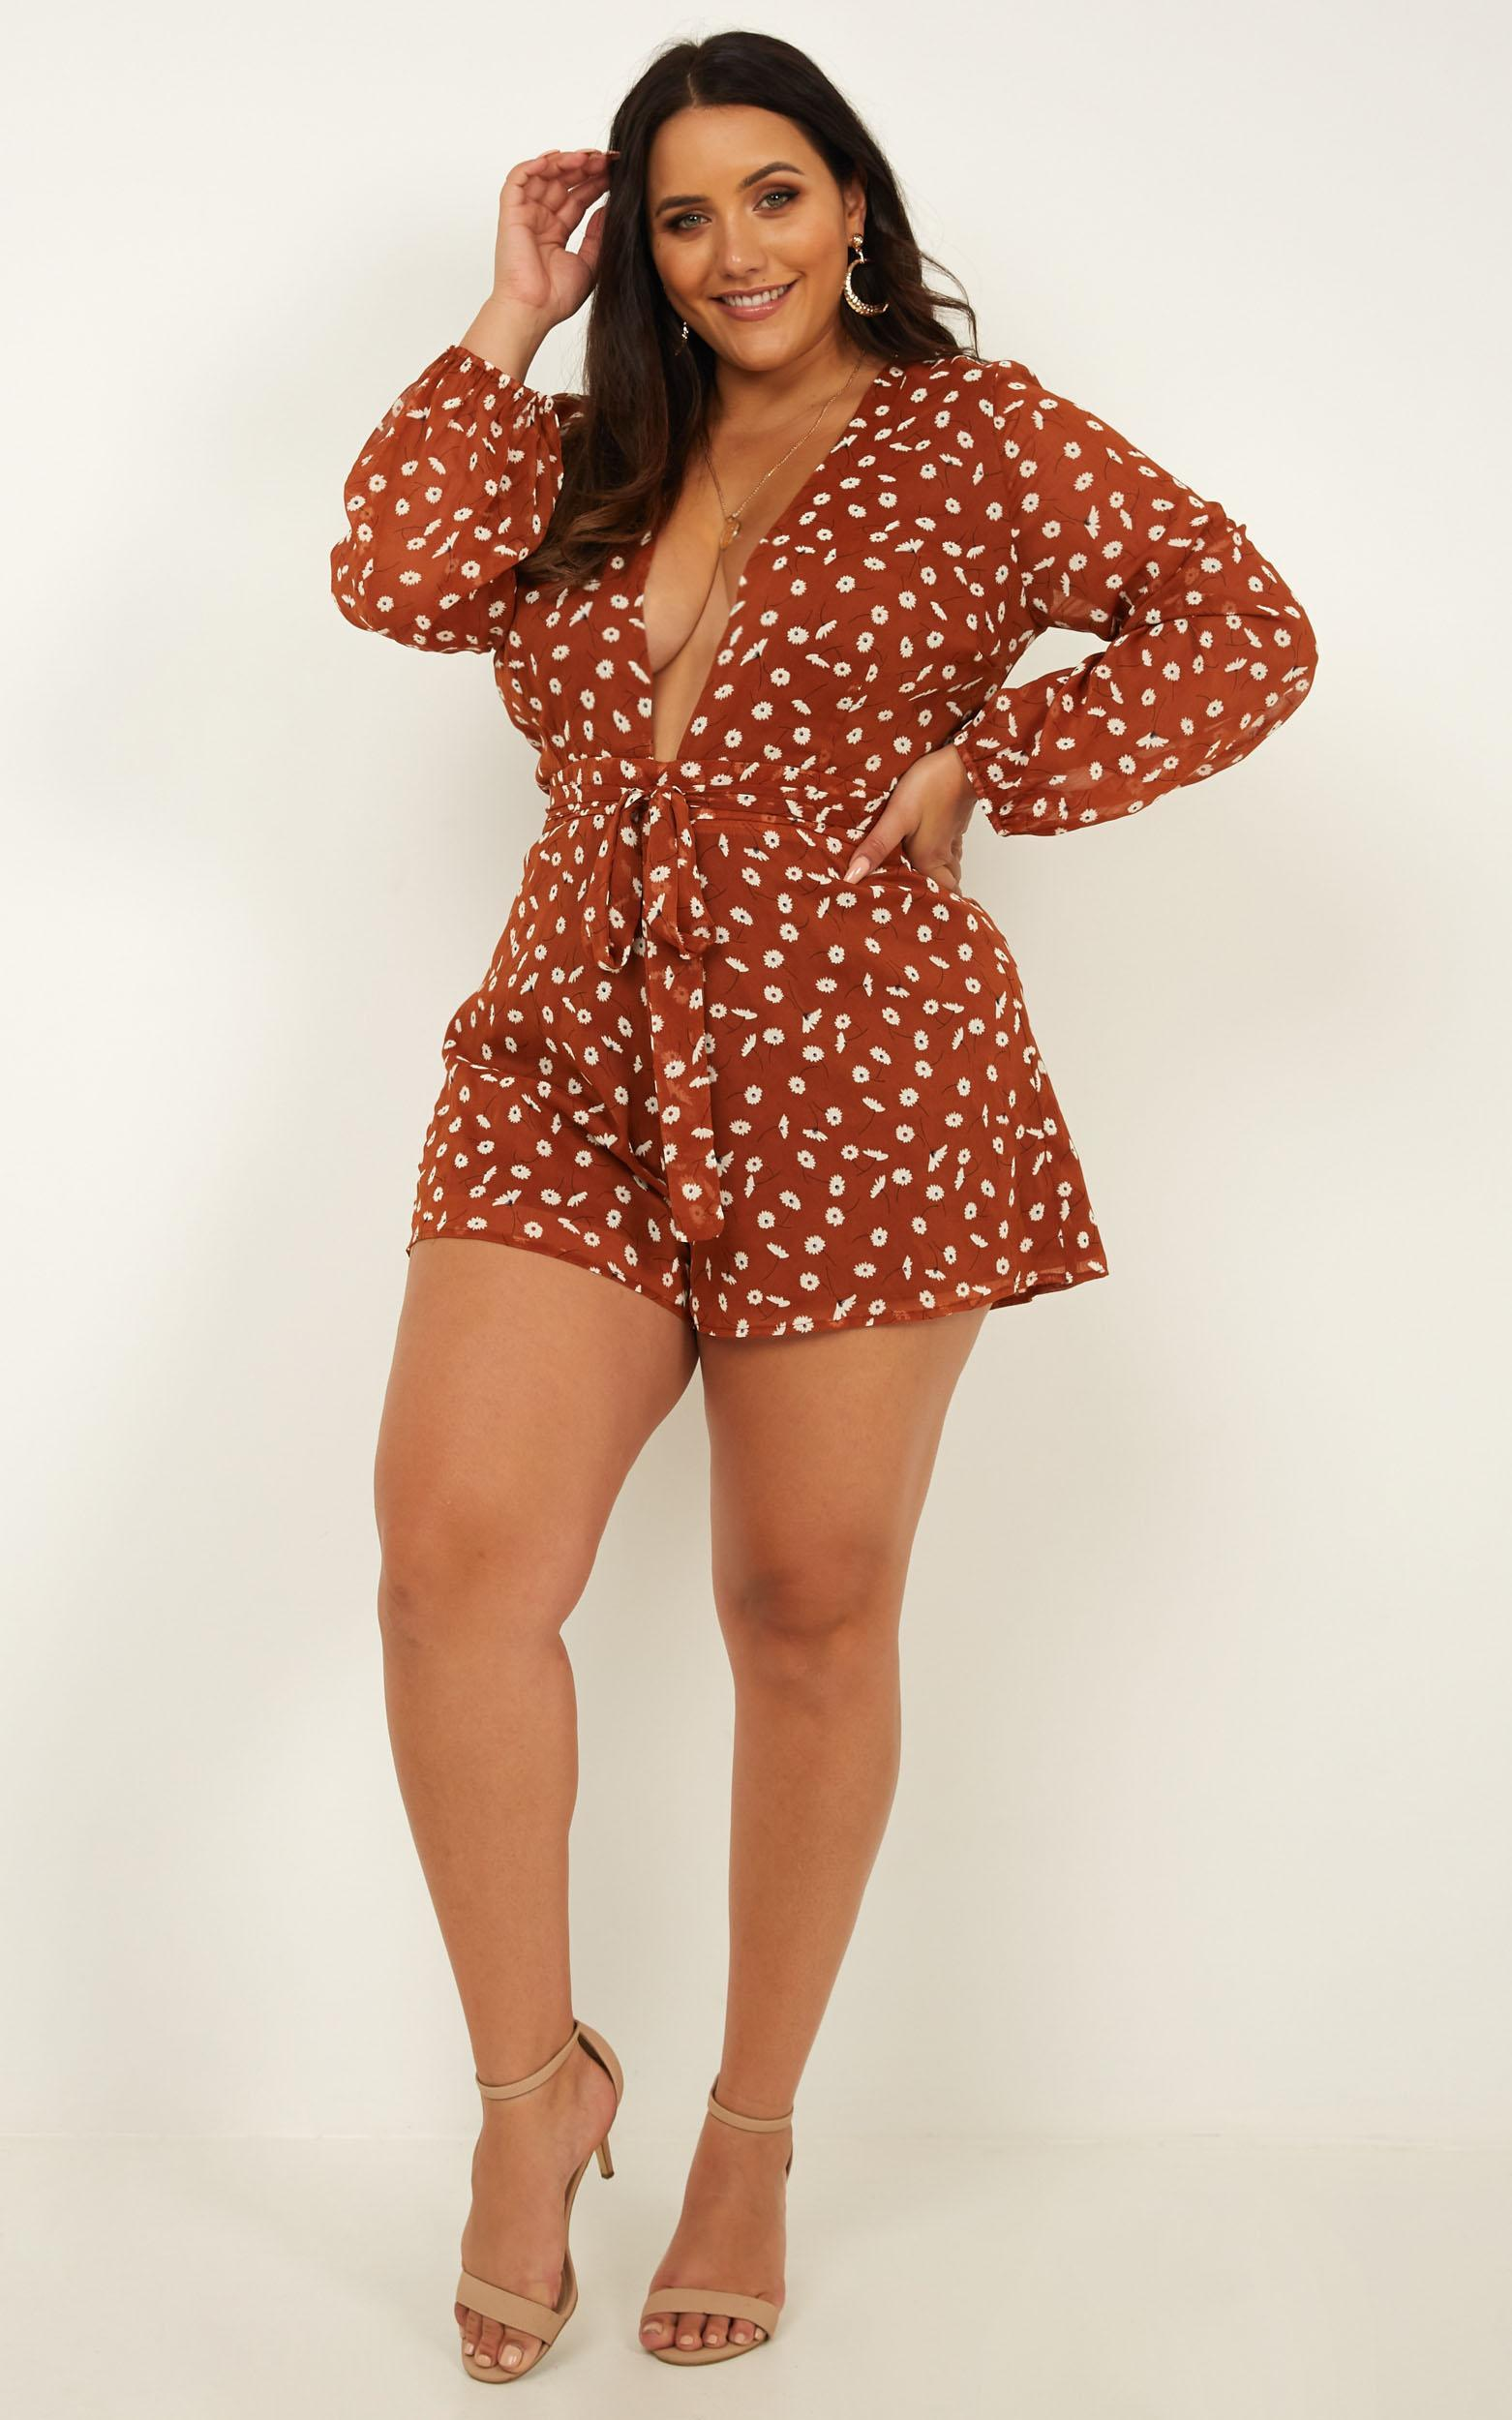 Wheels Bouncing Playsuit In rust floral - 20 (XXXXL), Rust, hi-res image number null